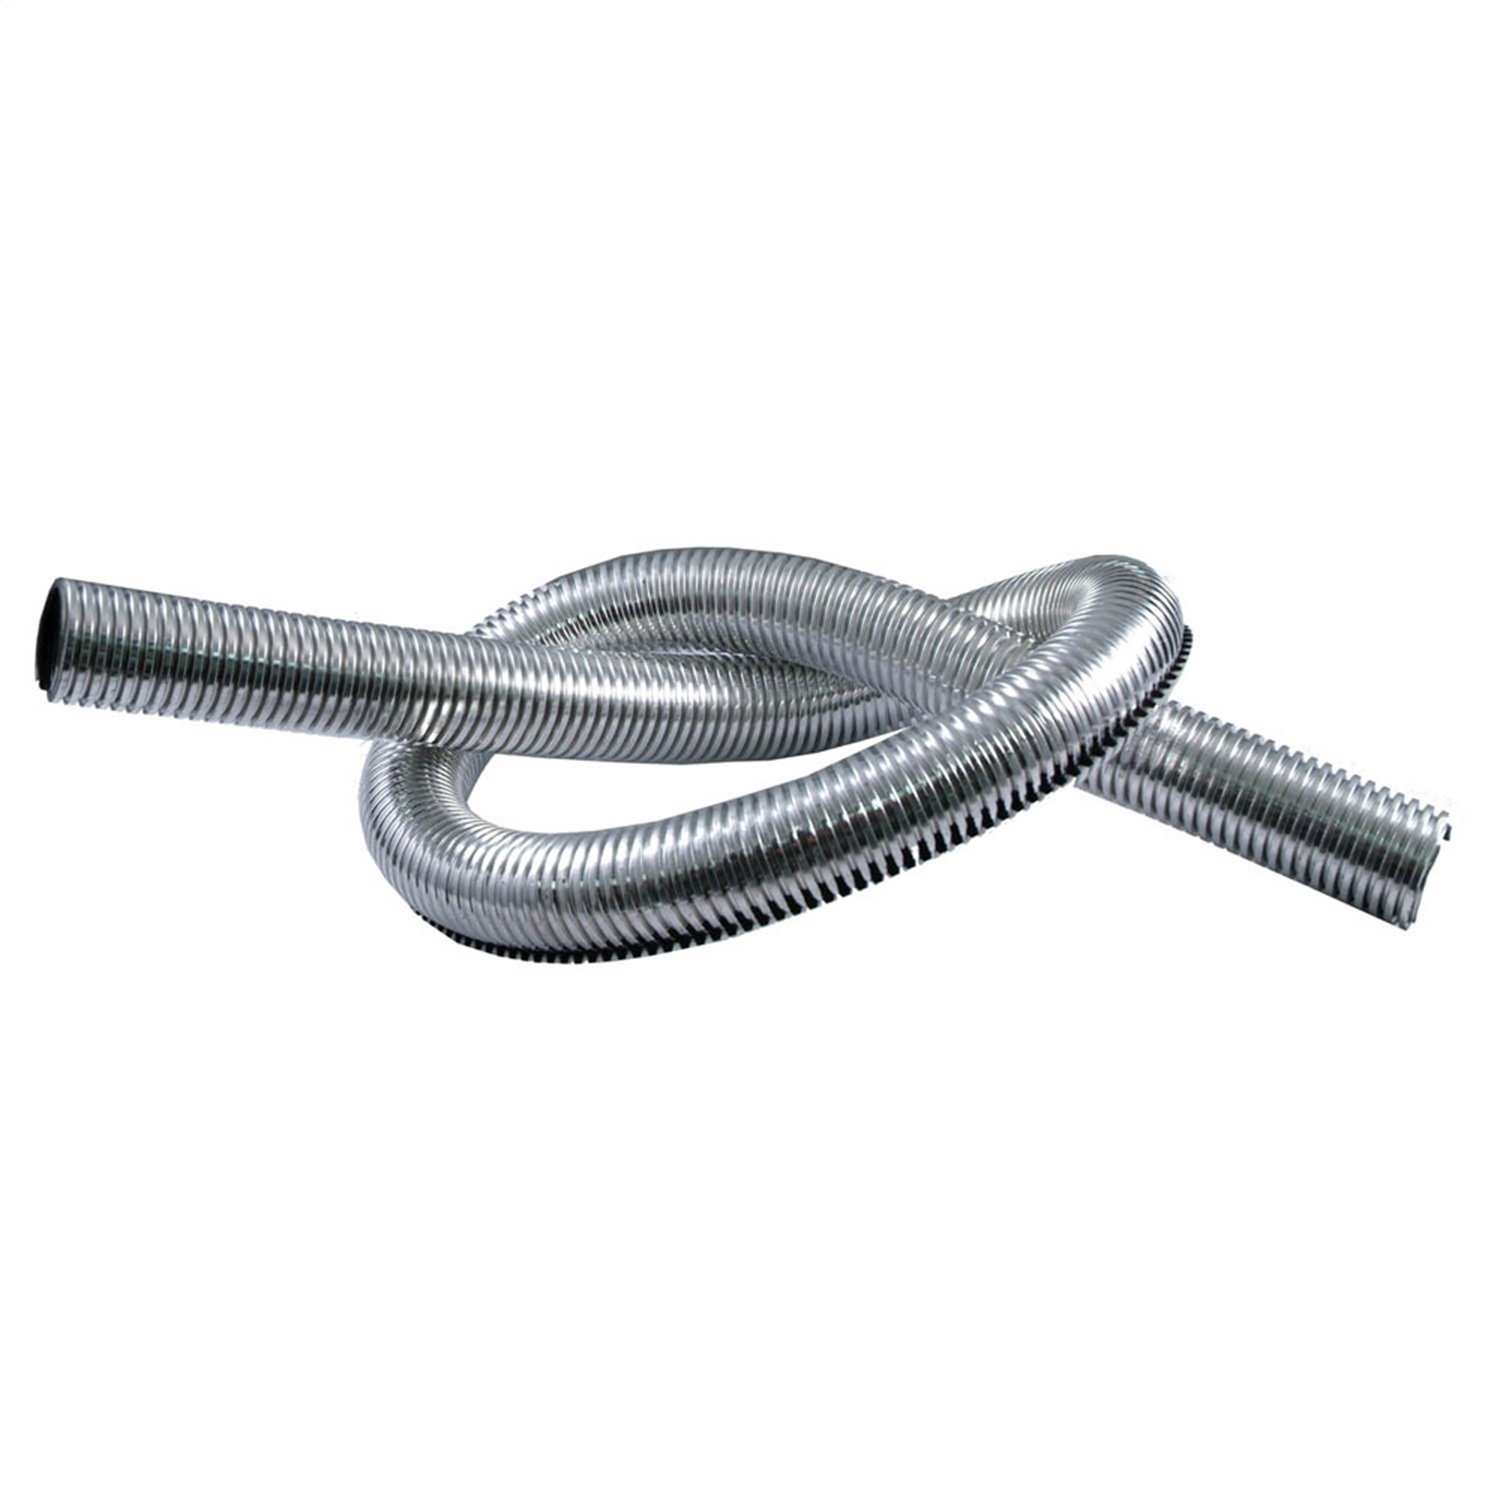 Spectre 29938 1' Chrome Convoluted Tubing Kit Spectre Performance SPE-29938